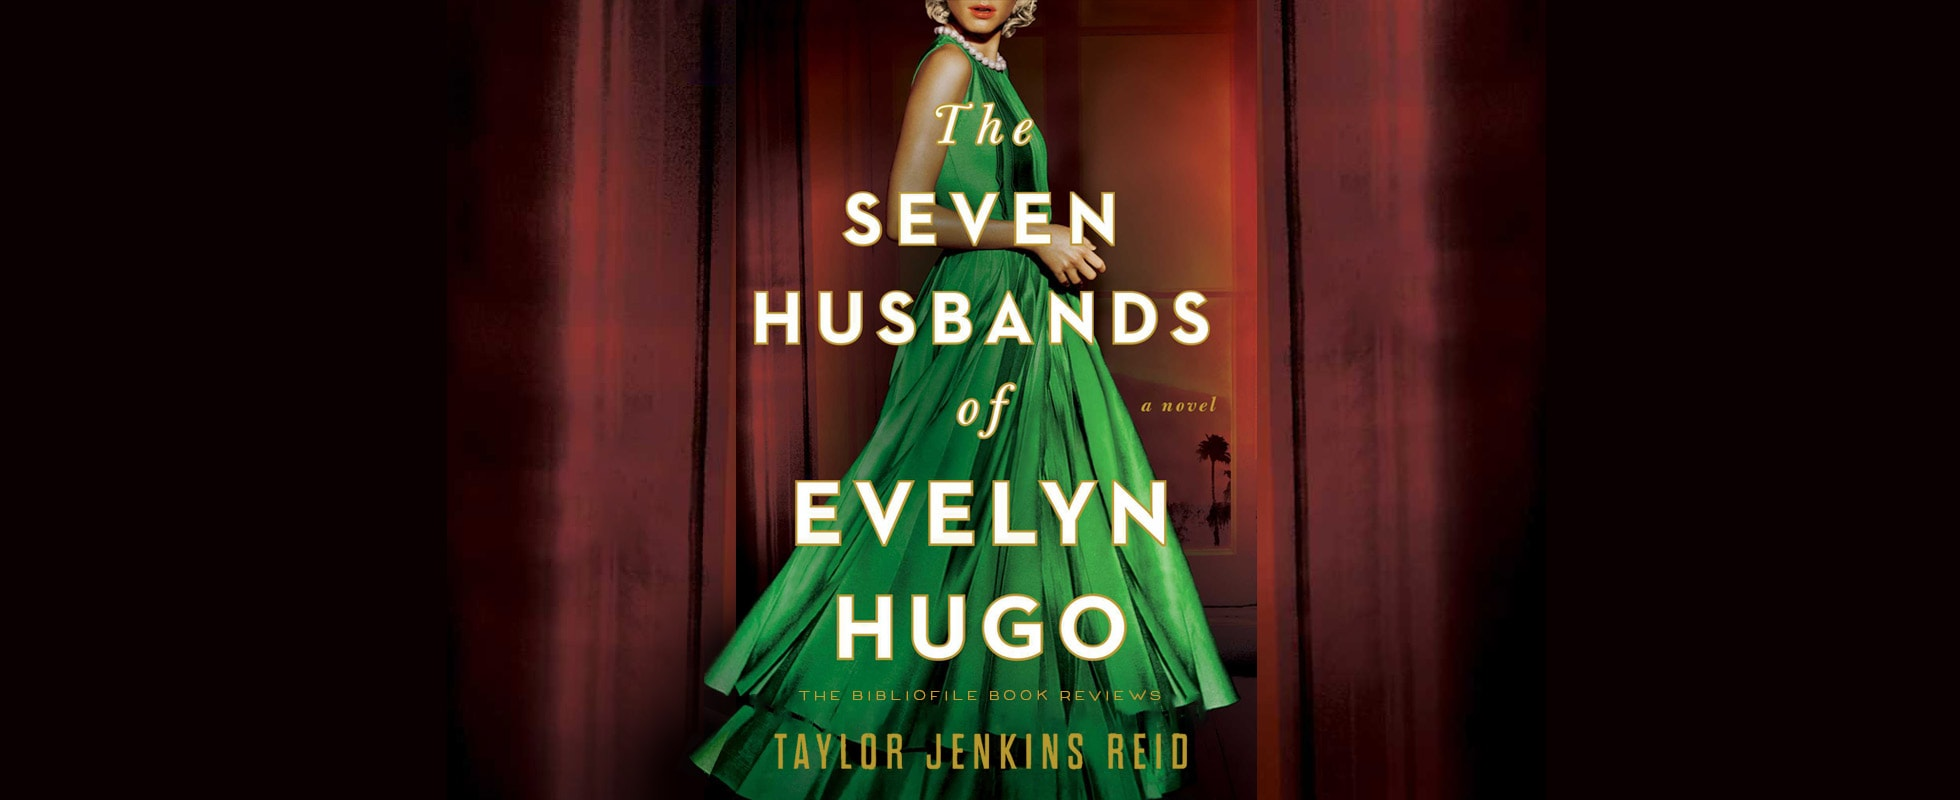 the seven husbands of evelyn hugo book summary synopsis ending spoilers detailed plot review